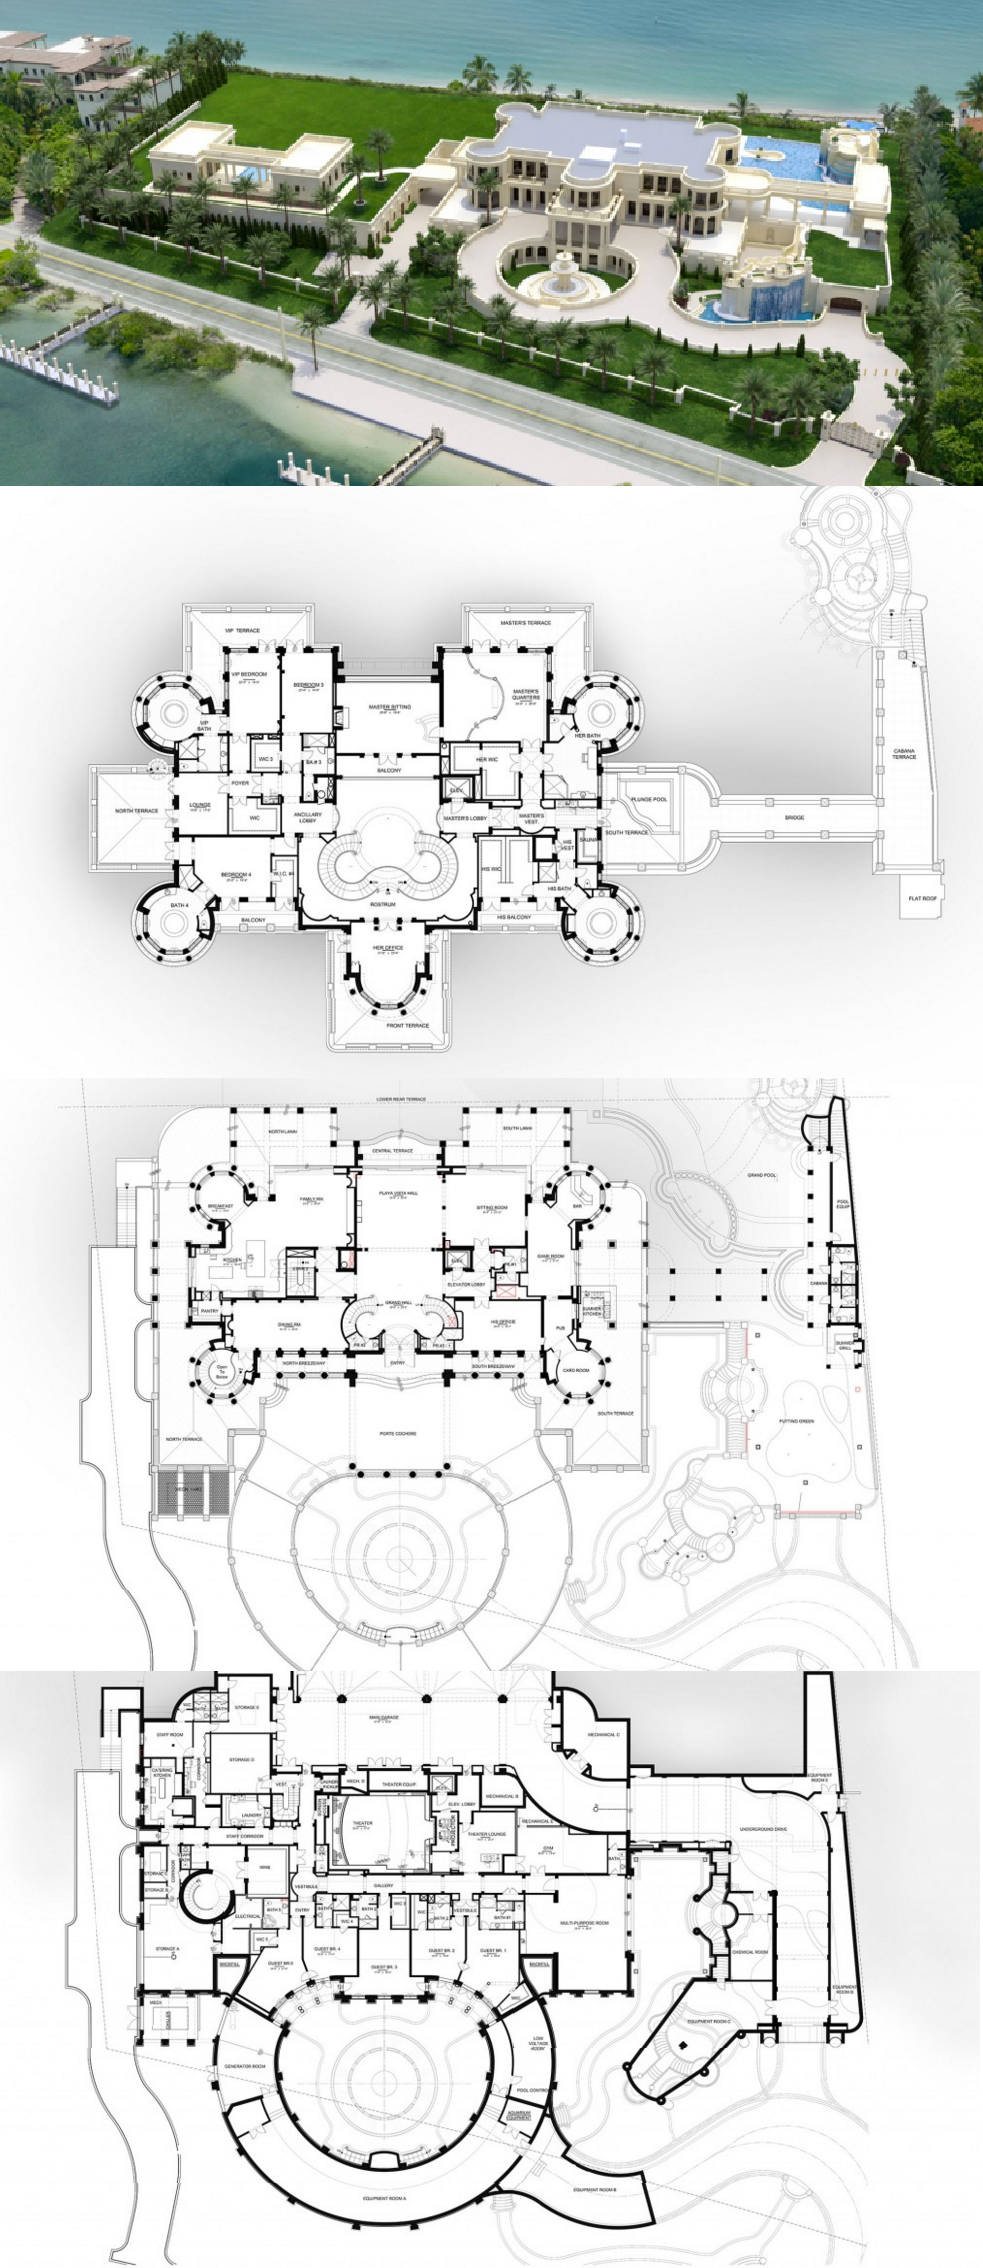 Floor Plans To The 60,000 Square Foot Le Palais Royal Oceanfront